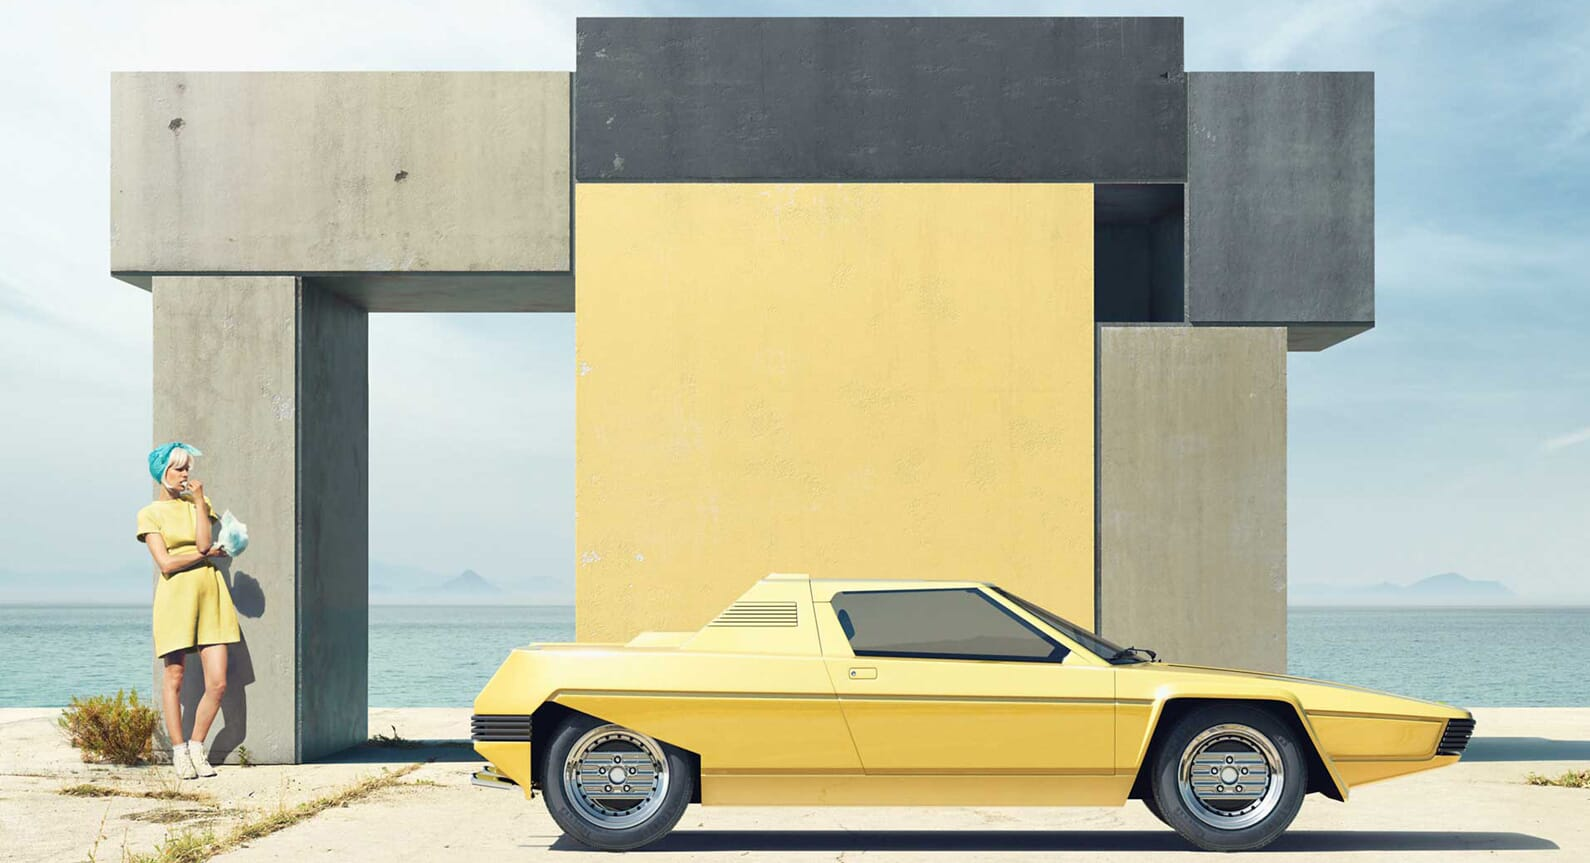 'Of Rainbows And Other Monuments' by Clemens Ascher